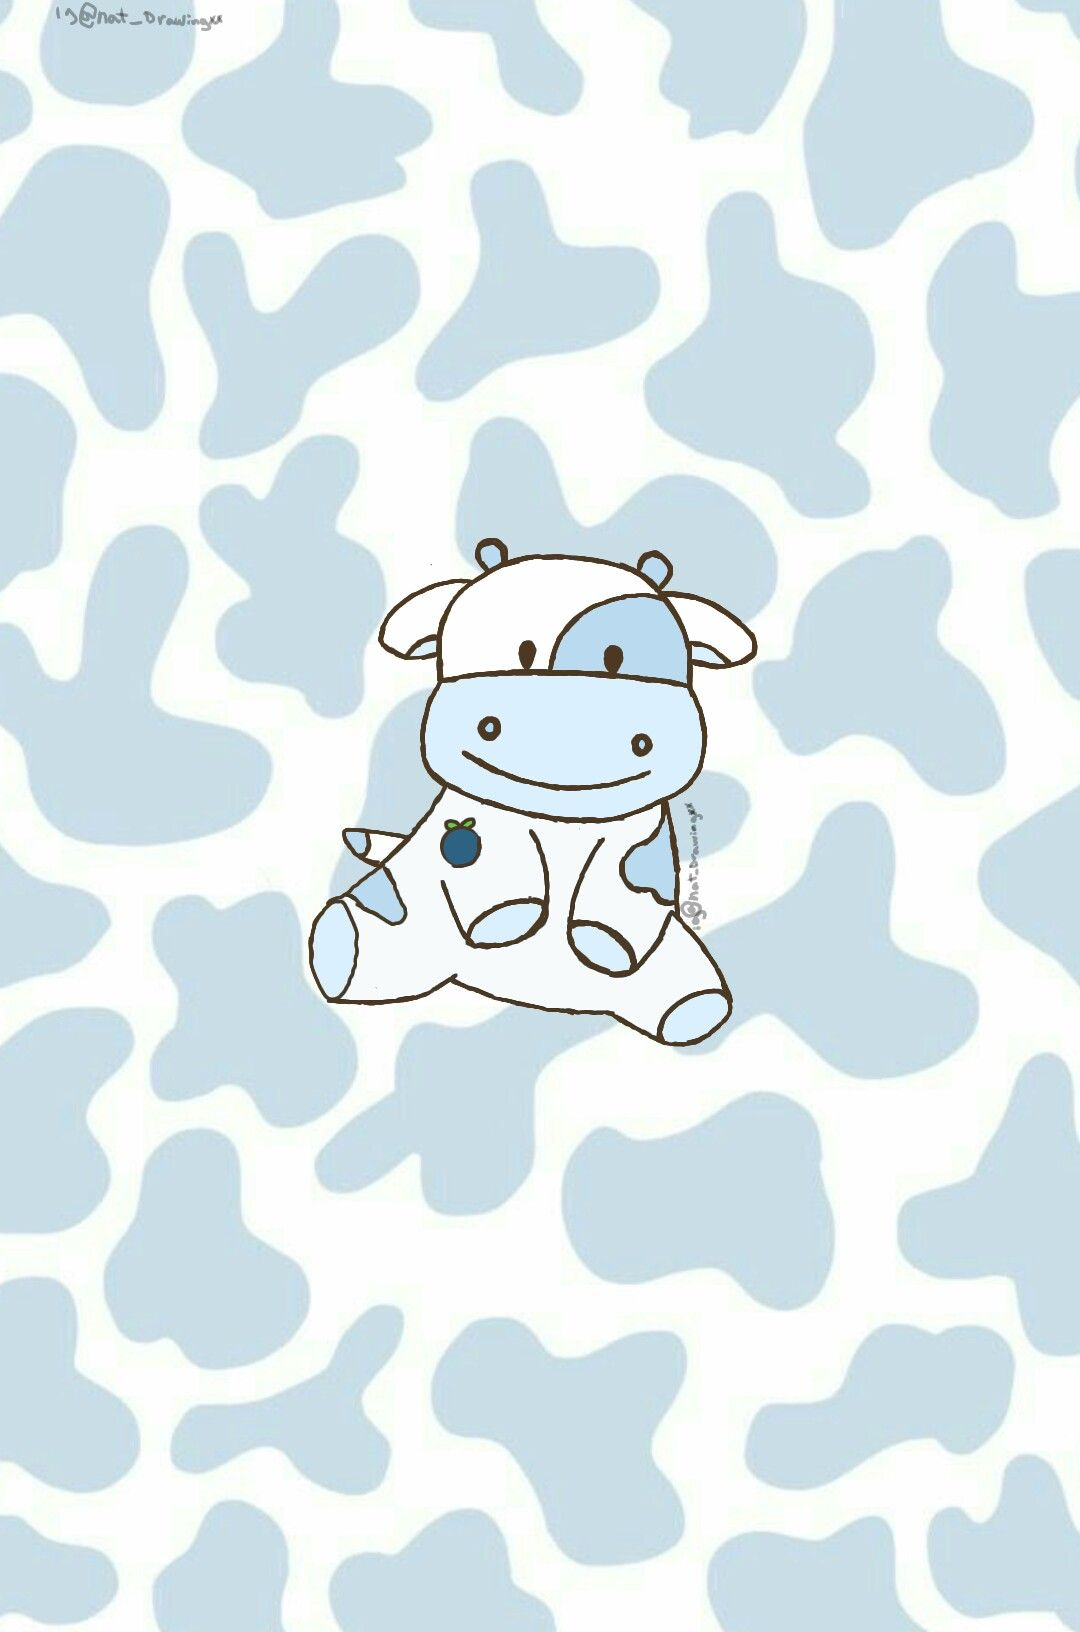 Nat Drawingxx On Ig Made This Blueberry Cow In 2021 Cow Wallpaper Cartoon Wallpaper Cute Patterns Wallpaper